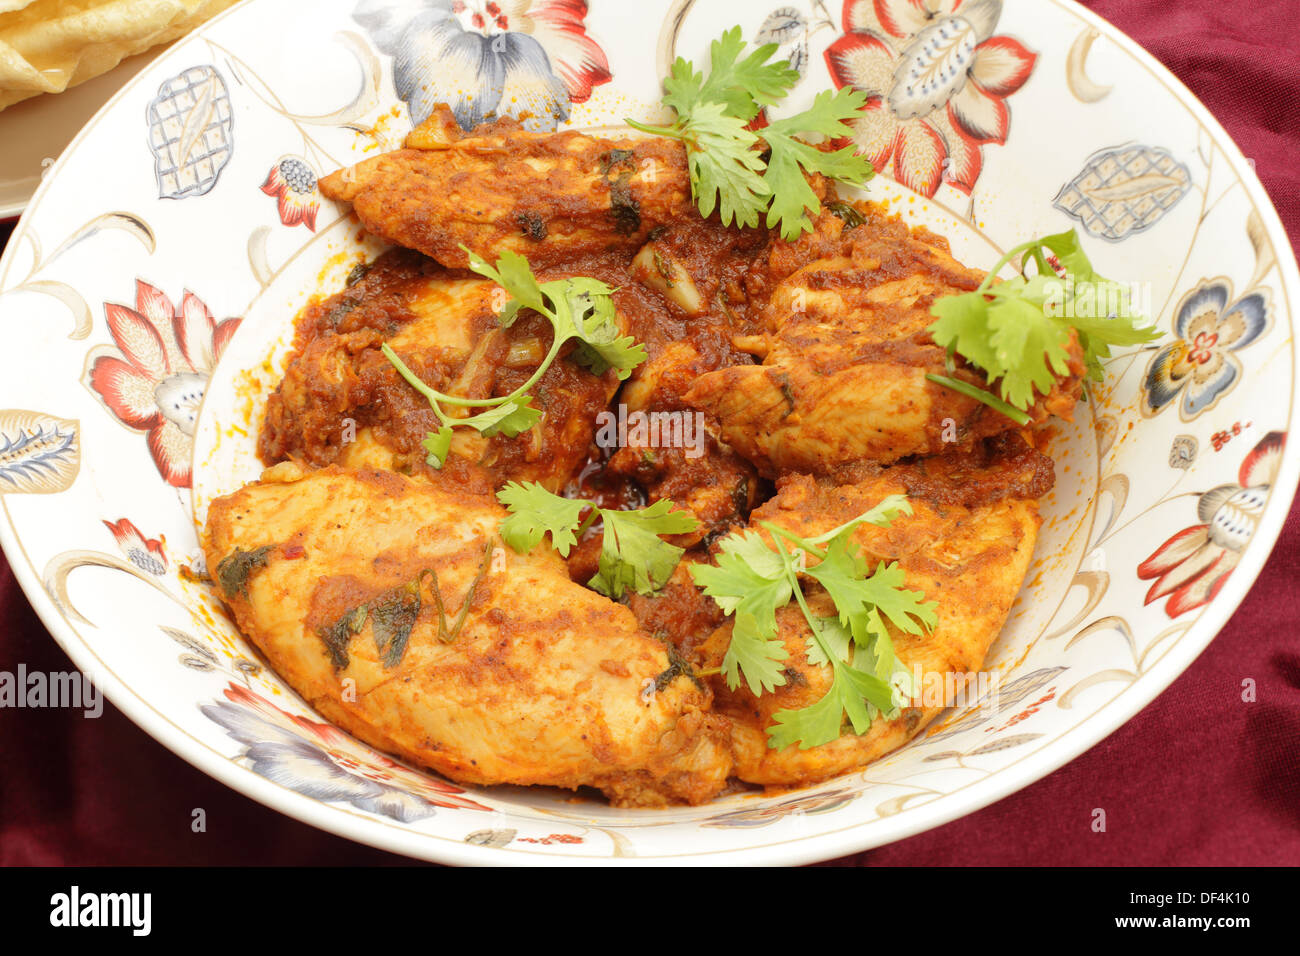 Kashmiri chicken - marinaded with spices and tomato sauce and fried with garlic and ginger -in a serving bowl - Stock Image